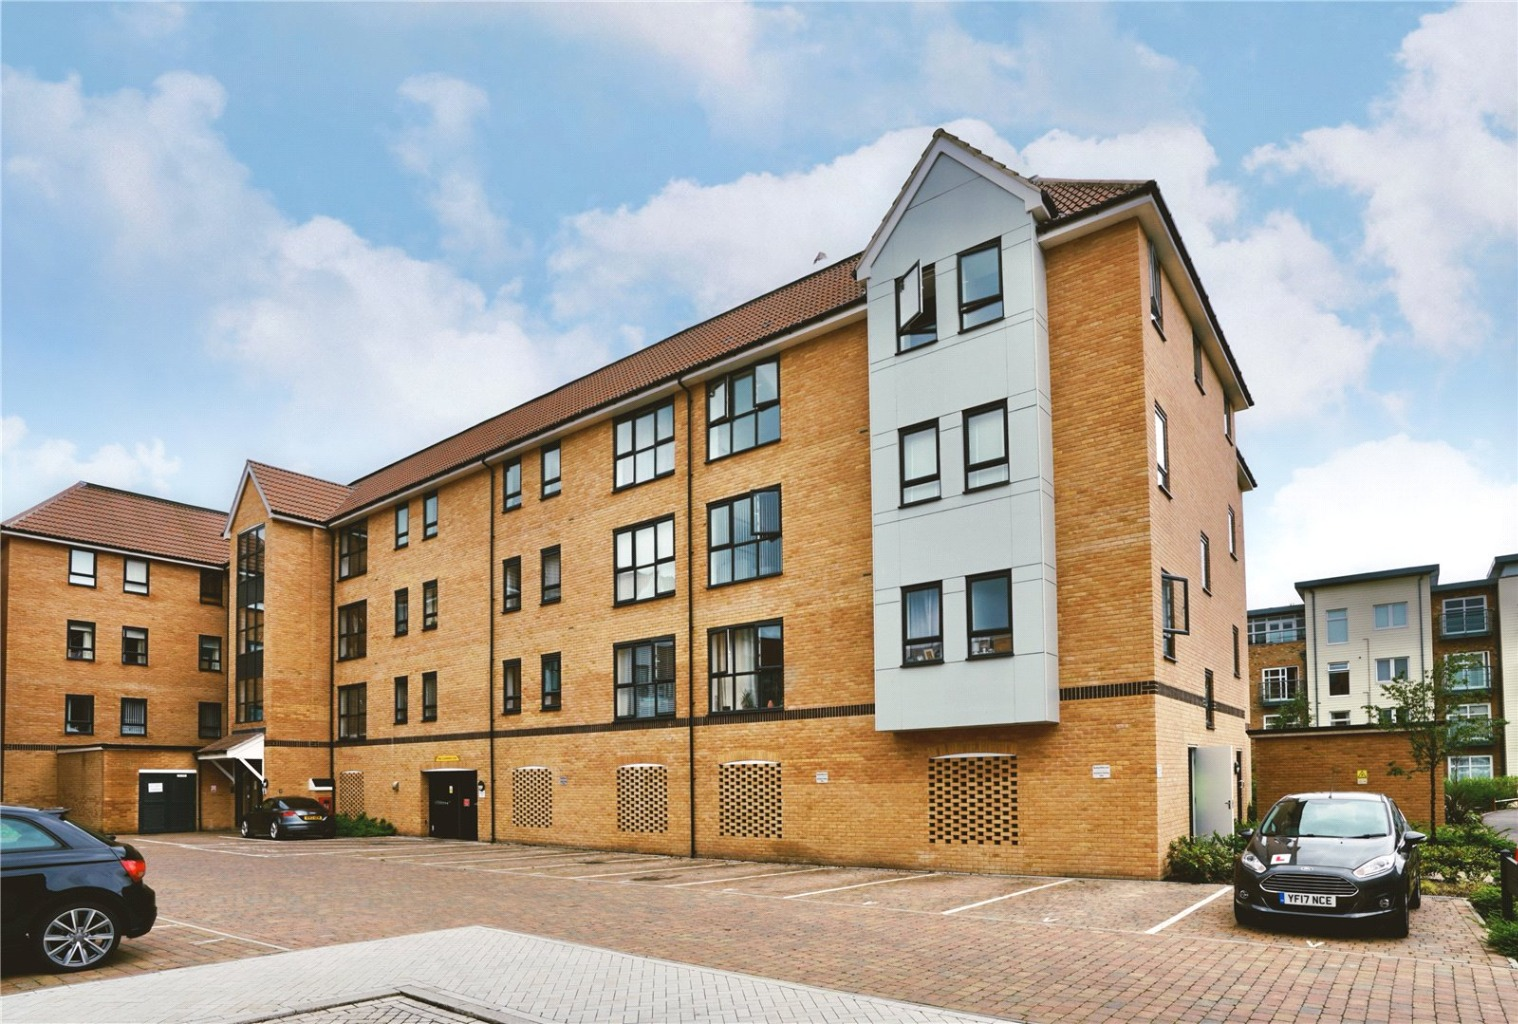 2 bed  for sale in Marbled White Court, St. Neots, PE19